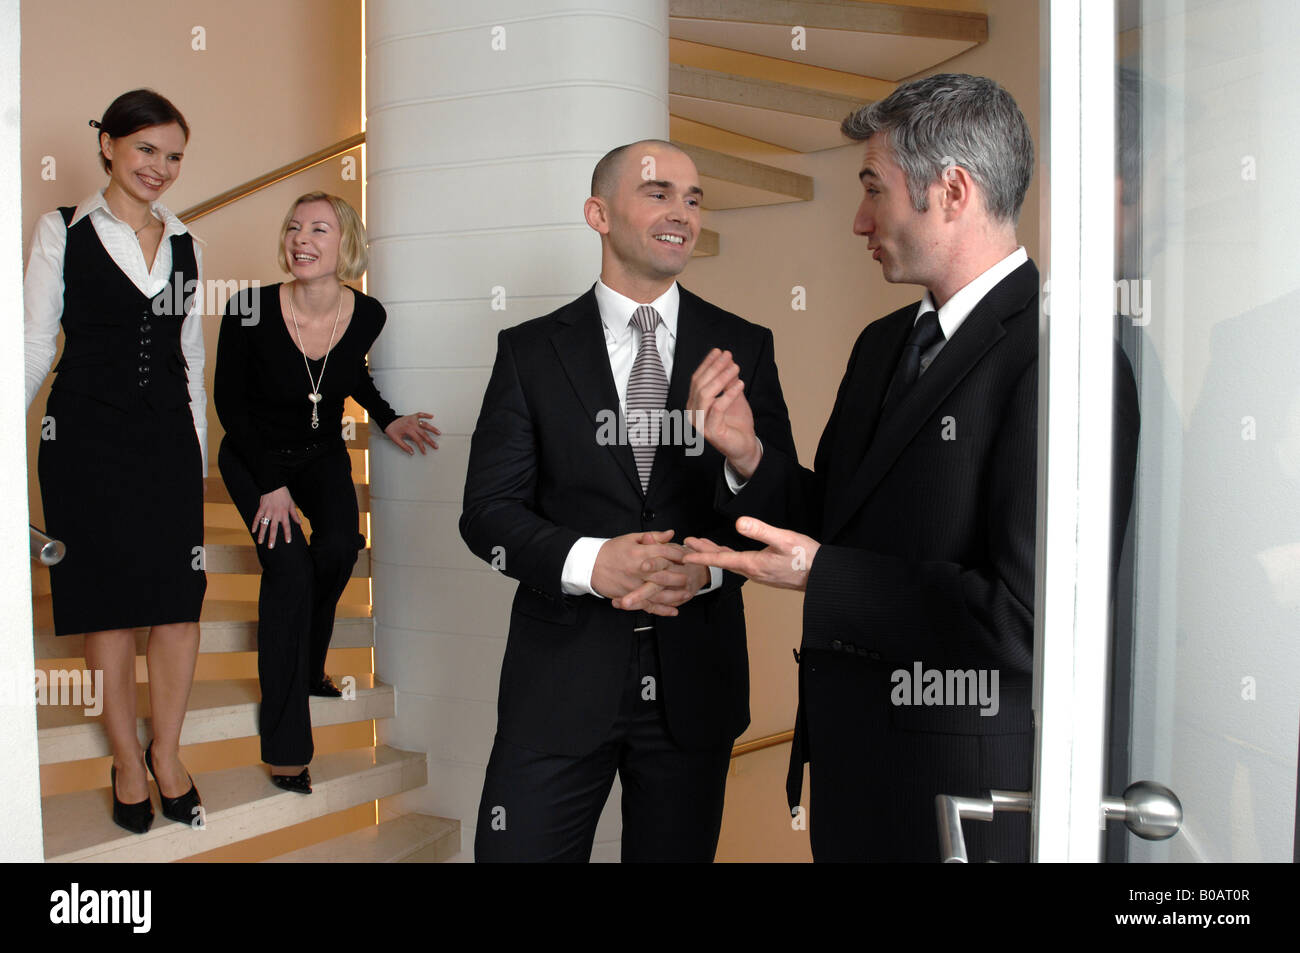 business people talking inside an office building - Stock Image